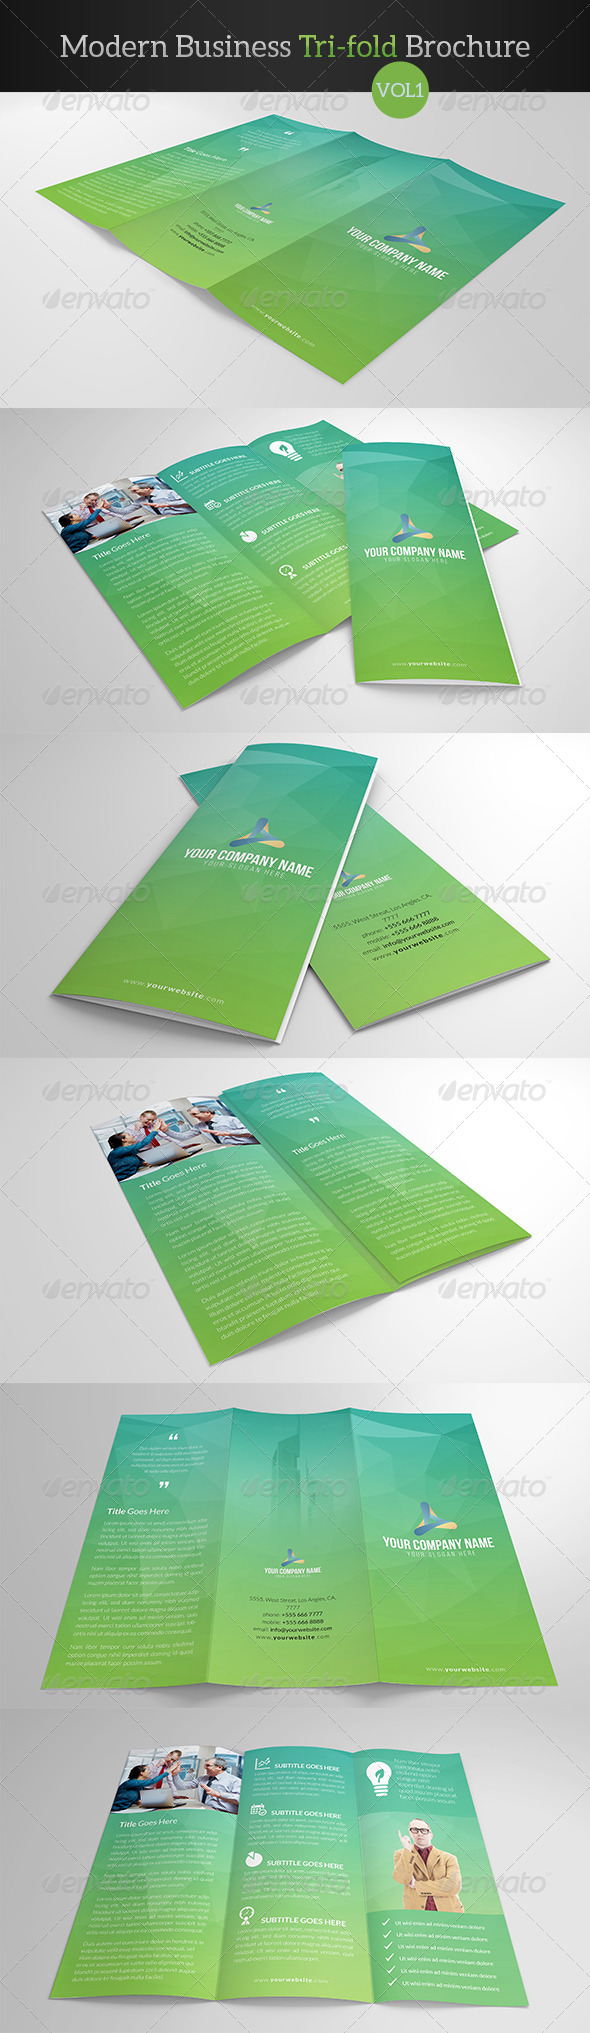 GraphicRiver Modern Business Trifold Brochure 7998989